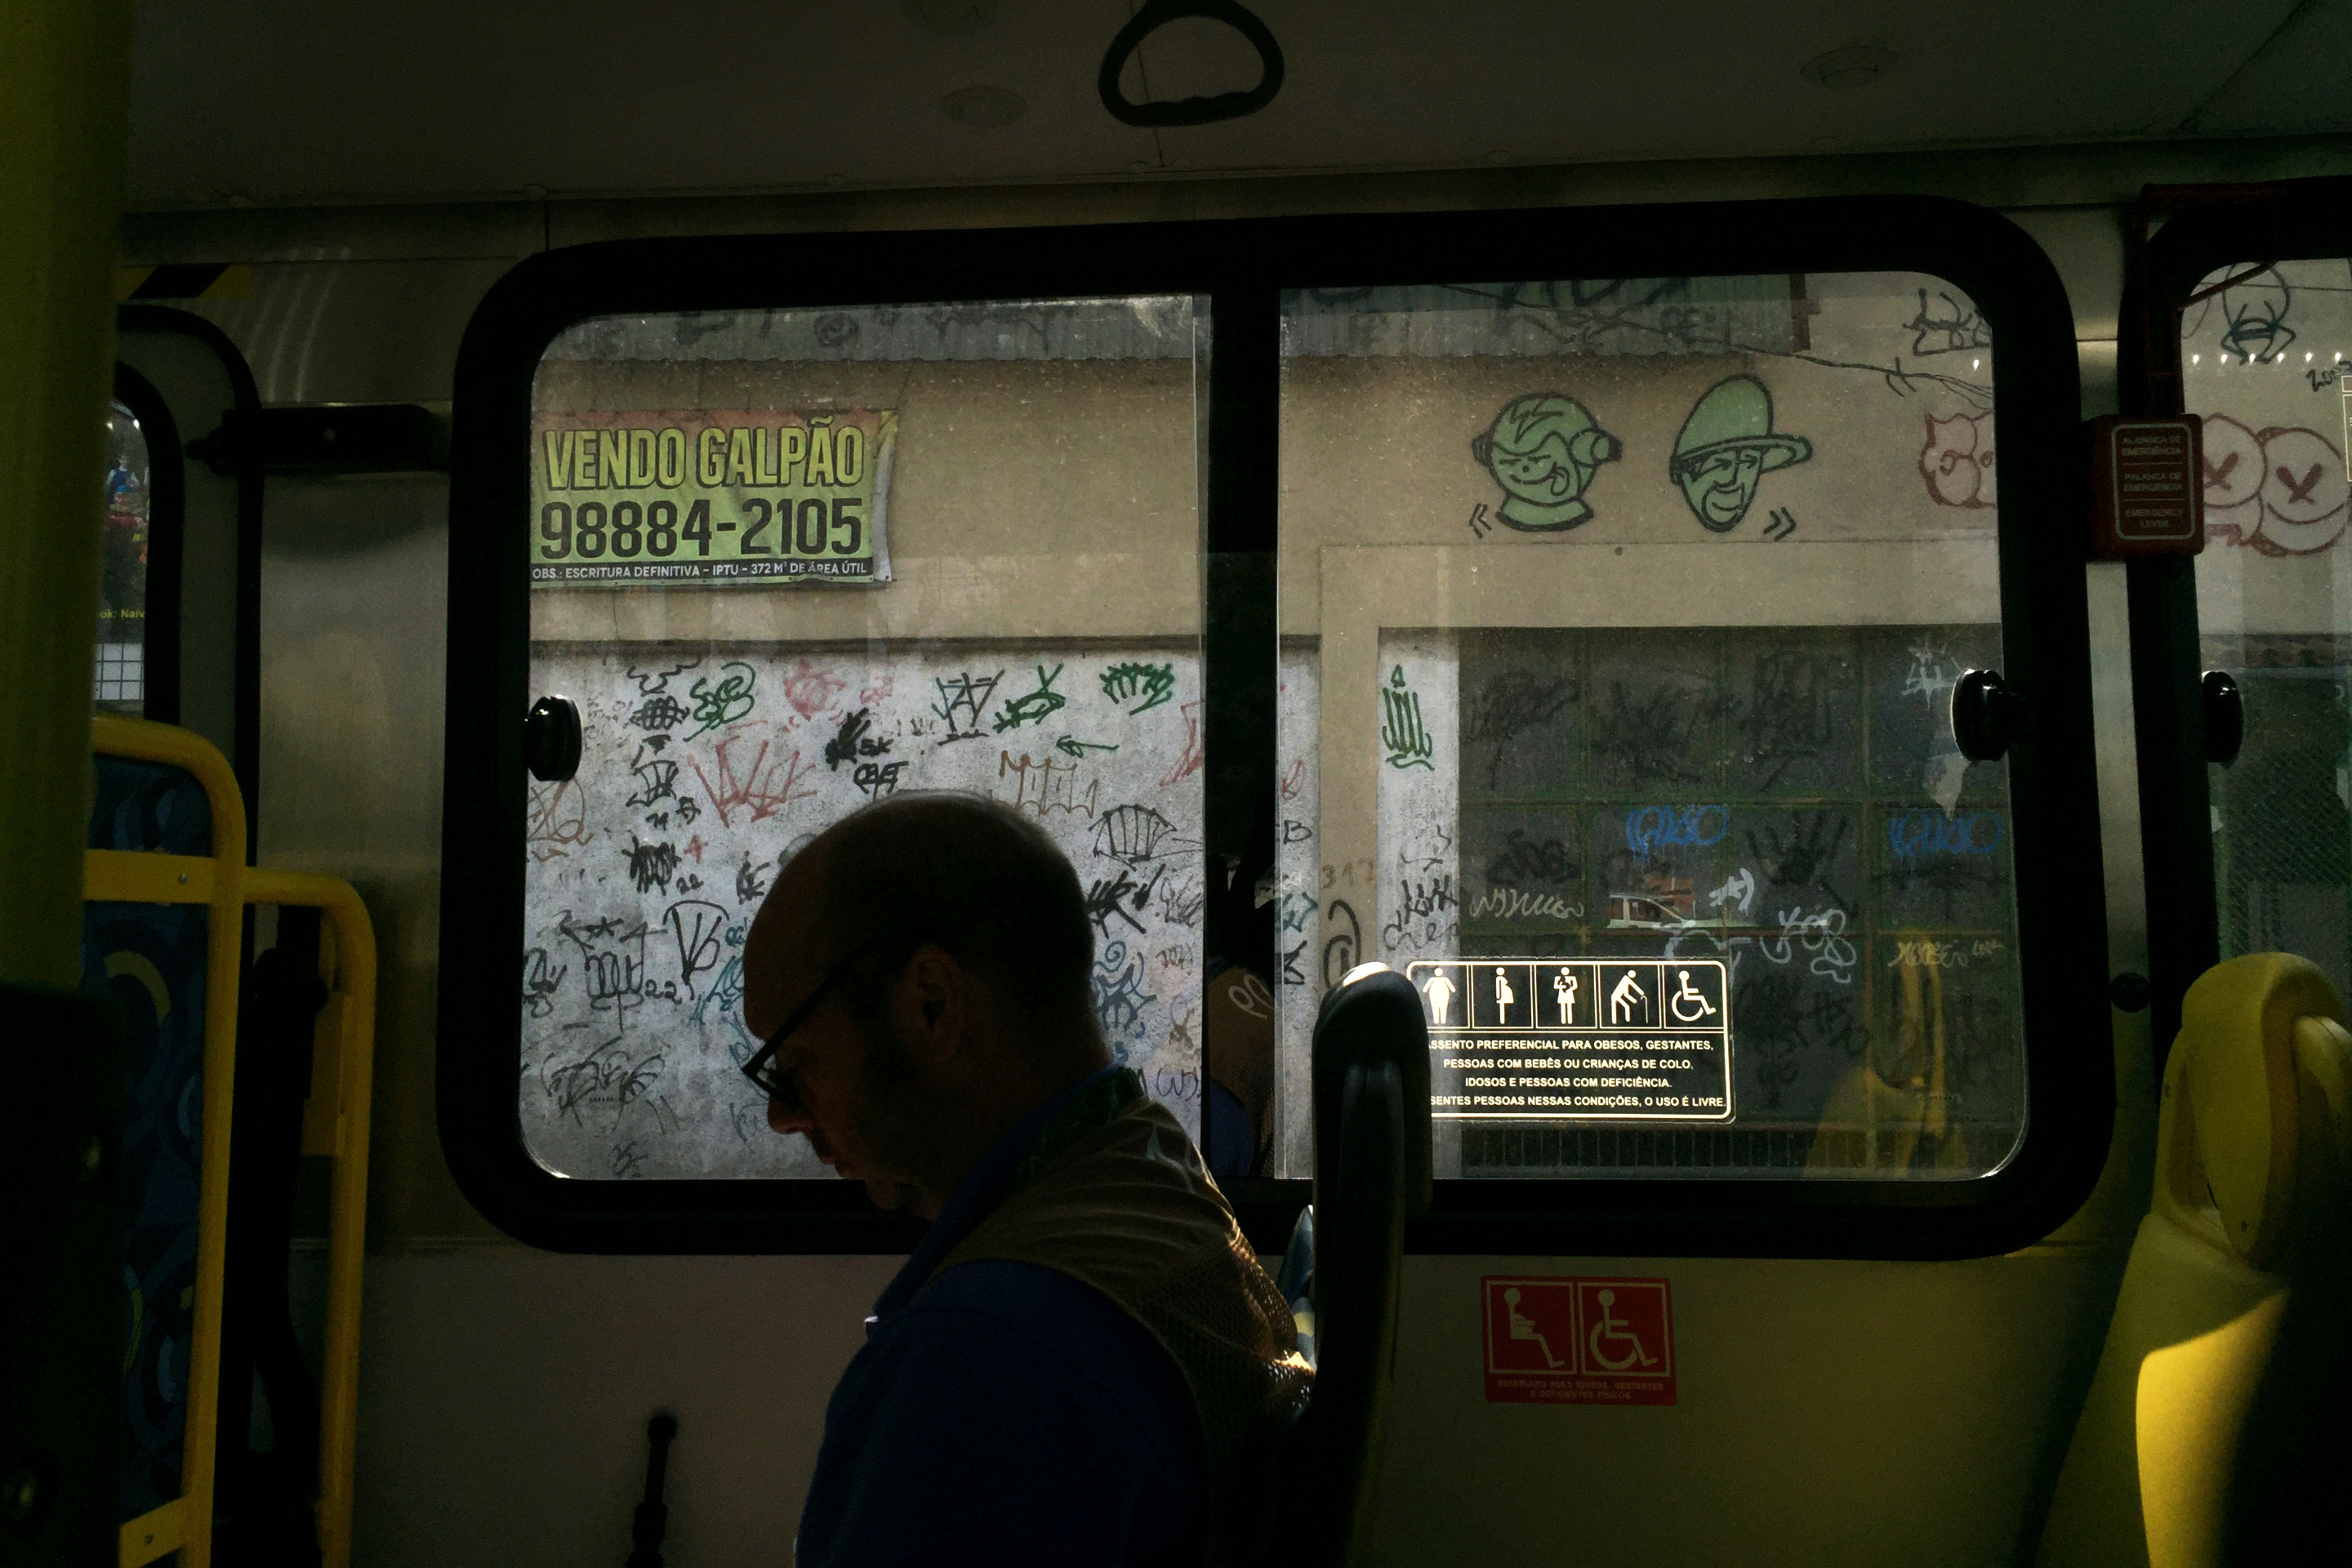 A journalist sits in a shuttle bus en route to the Whitewater Stadium, a venue for the canoe and kayak slalom events, at the 2016 Summer Olympics in Rio de Janeiro, Brazil, Tuesday, Aug. 9, 2016. (AP Photo/Jae C. Hong)